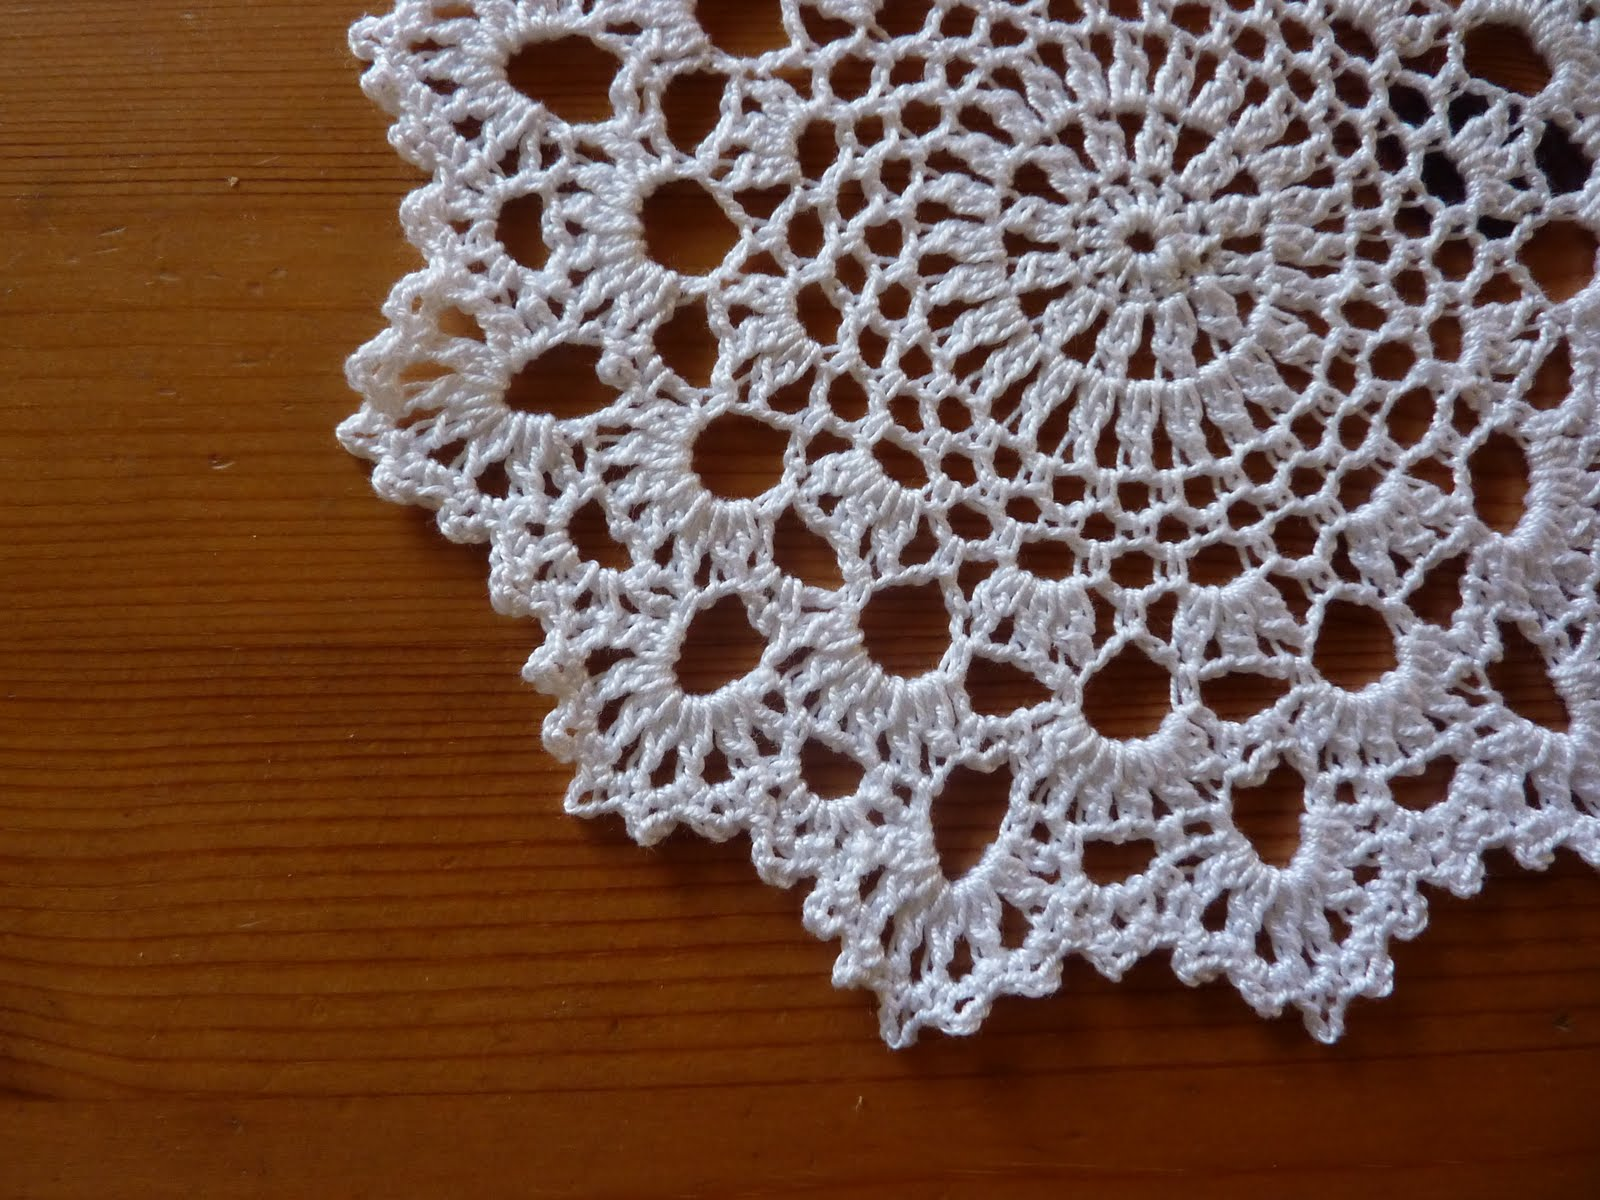 Crochet Doily Patterns Free For Beginners : Yellow, Pink and Sparkly: Another Doily